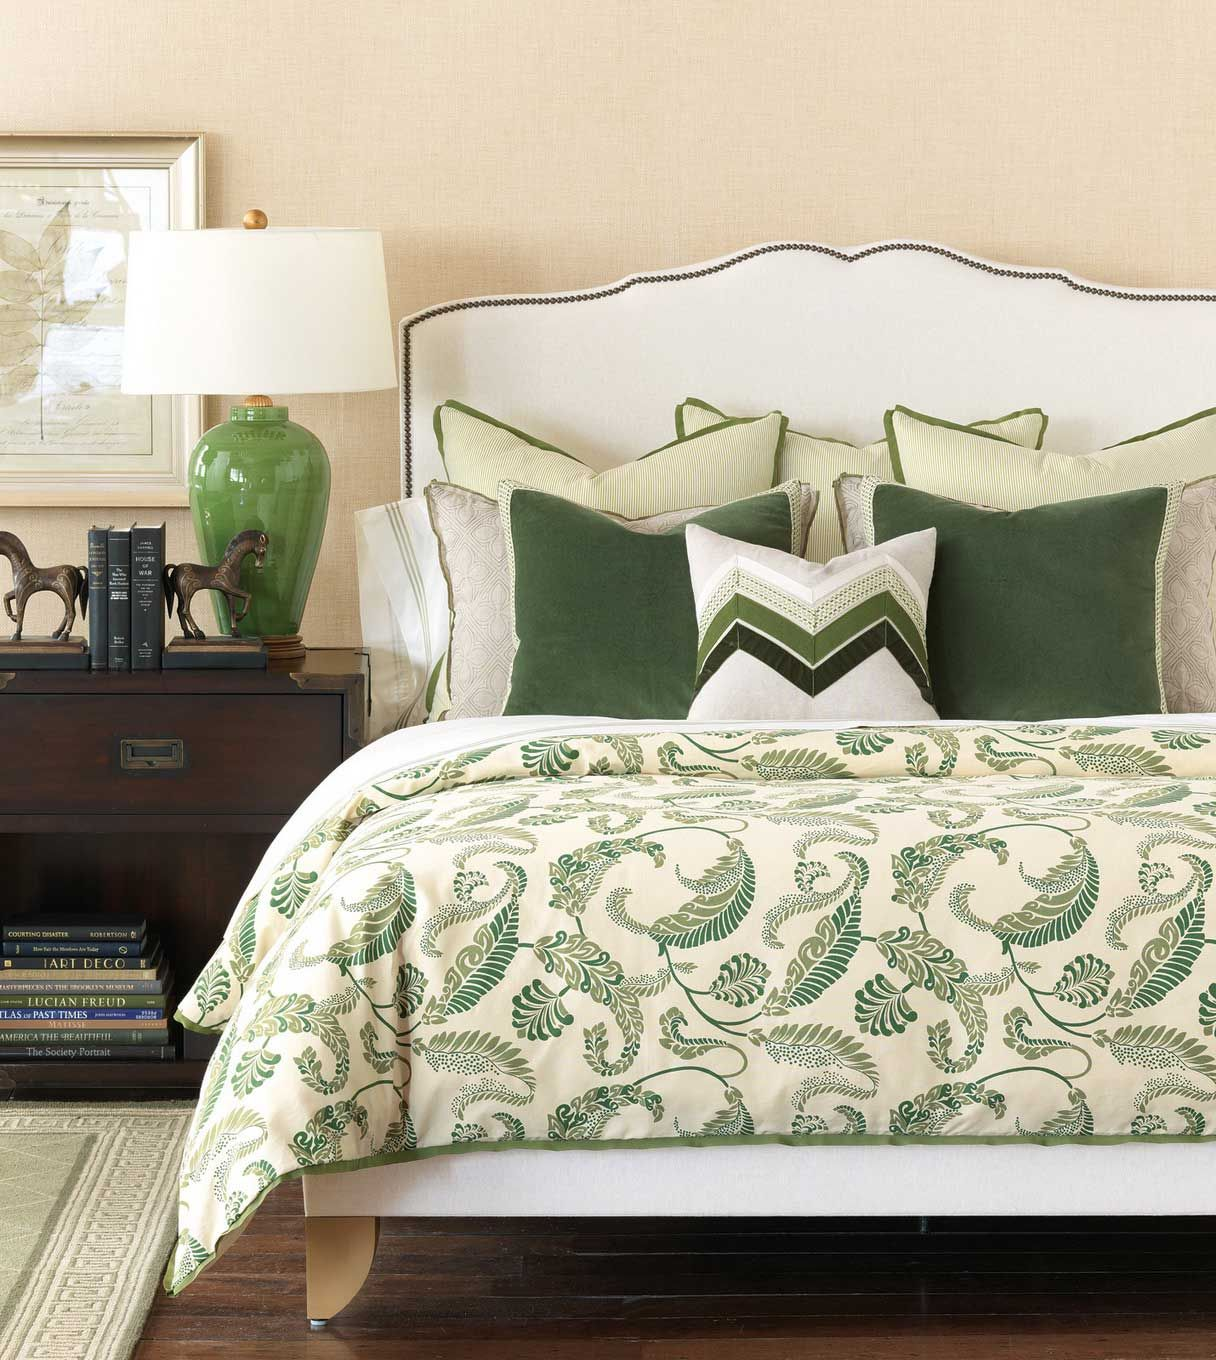 Home Design and Interior Design Gallery of Awesome Floral White Cream Green Decorative Pillows ...